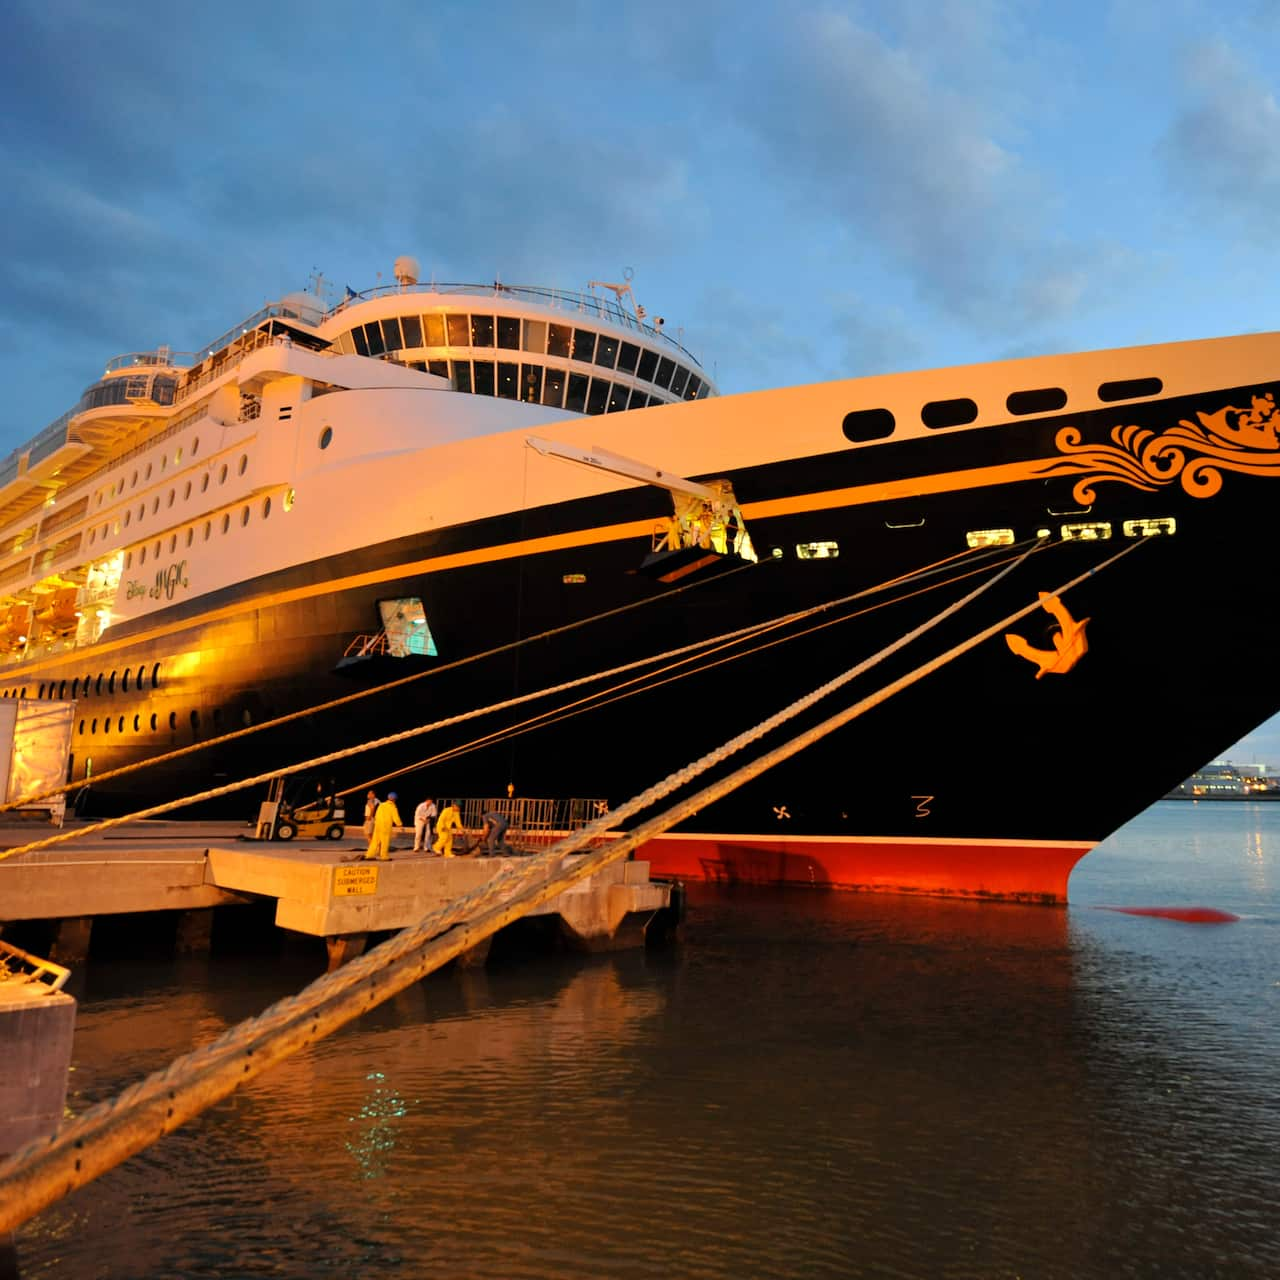 The bow of the Disney Magic cruise ship tethered to a dock